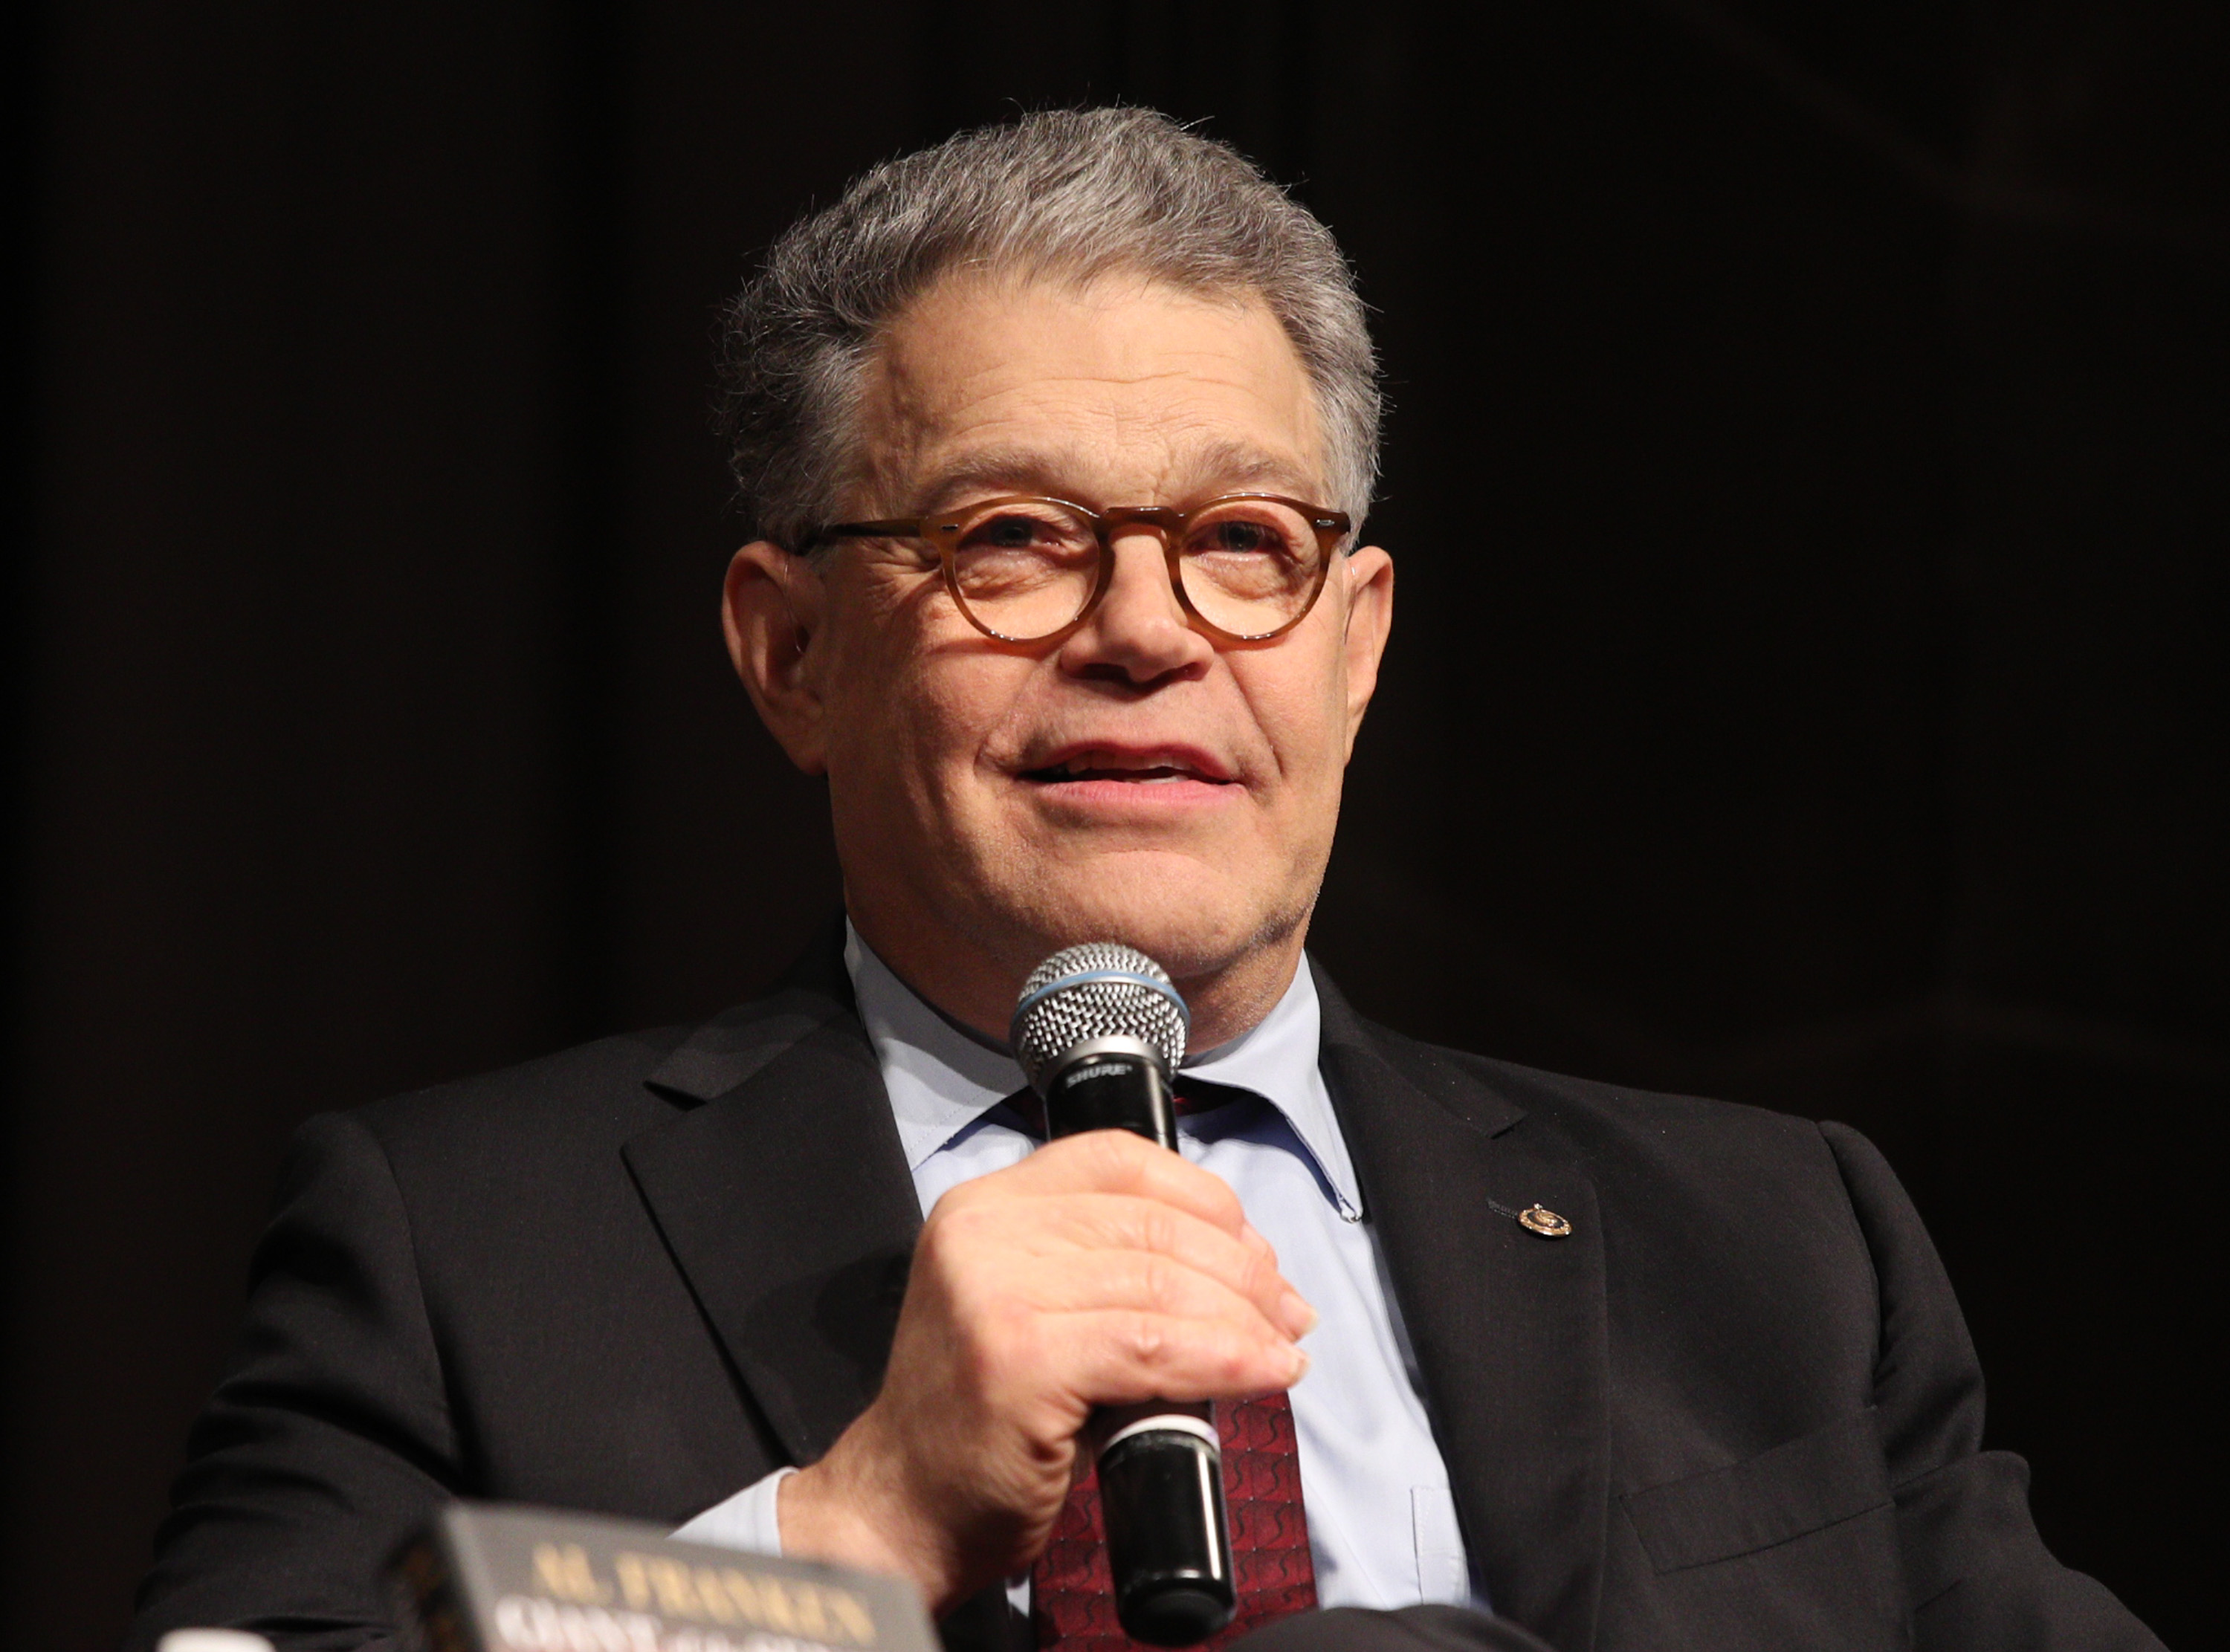 Senator Al Franken speaks at The Great Hall at Cooper Union in New York City, on Aug. 1, 2017.